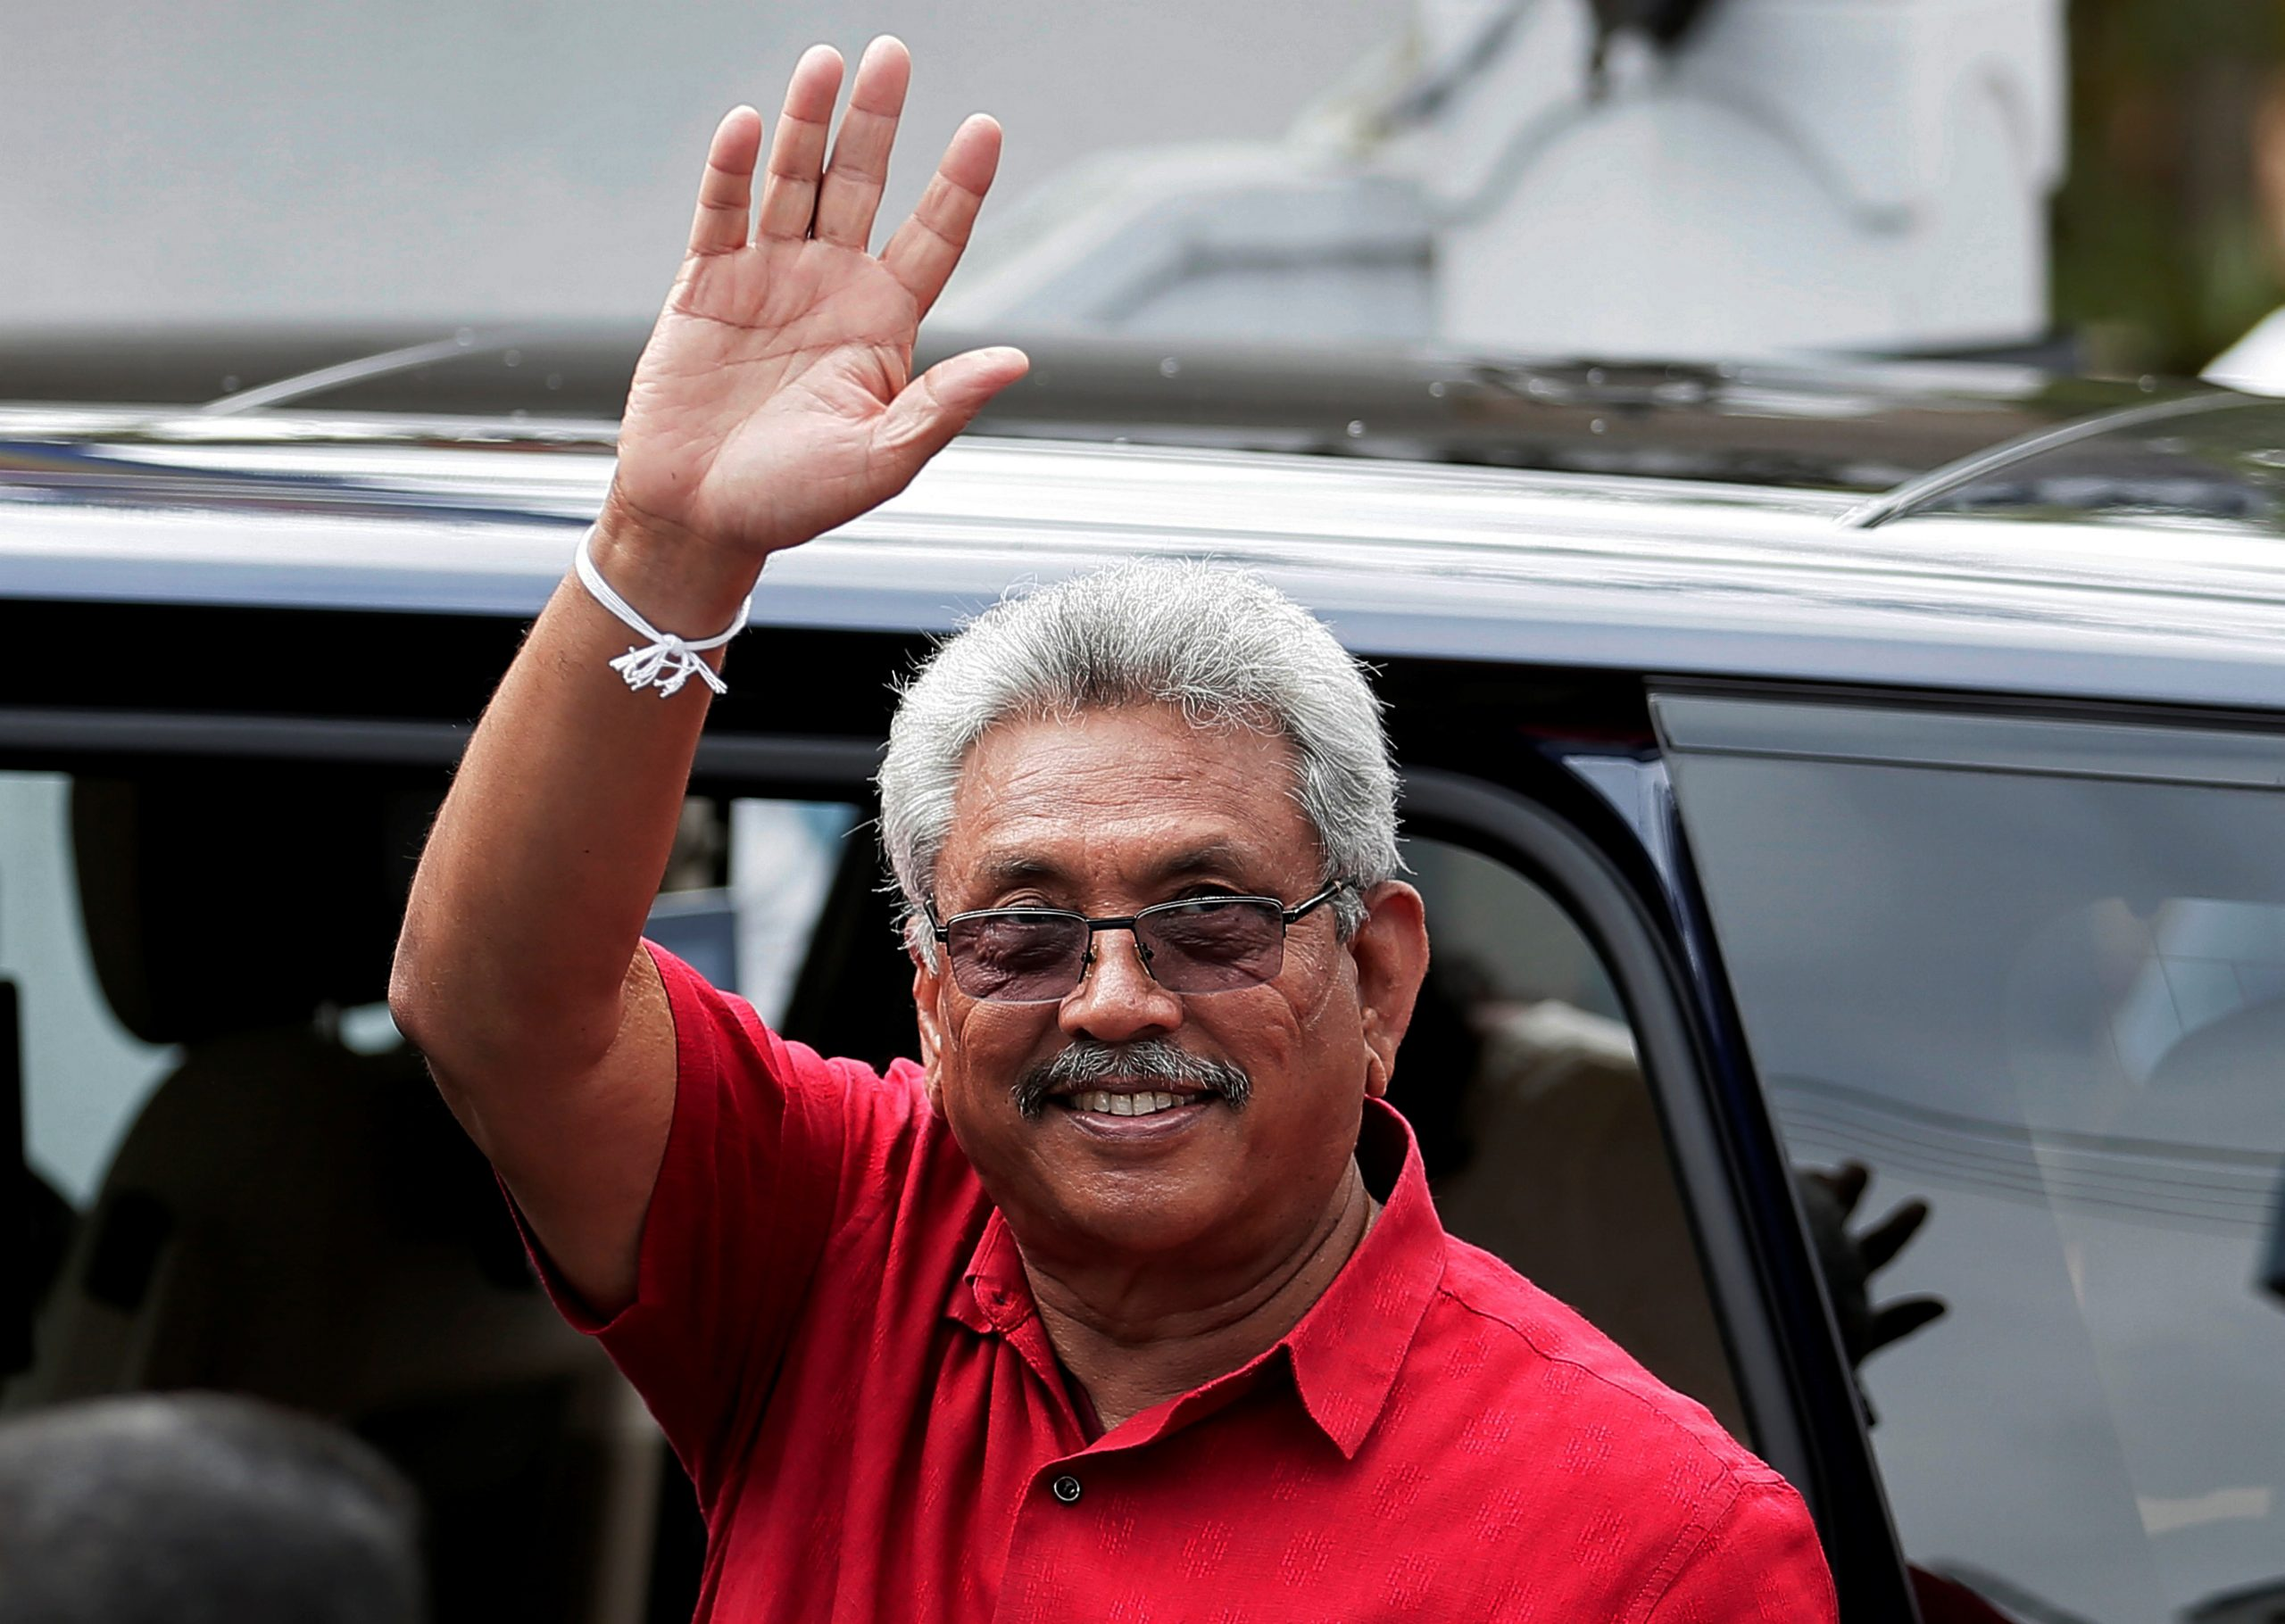 Sri Lanka's President Gotabaya Rajapaksa waves at his supporters as he leaves a polling station after casting his vote during the country's parliamentary election in Colombo, Sri Lanka, August 5, 2020. REUTERS/Dinuka Liyanawatte